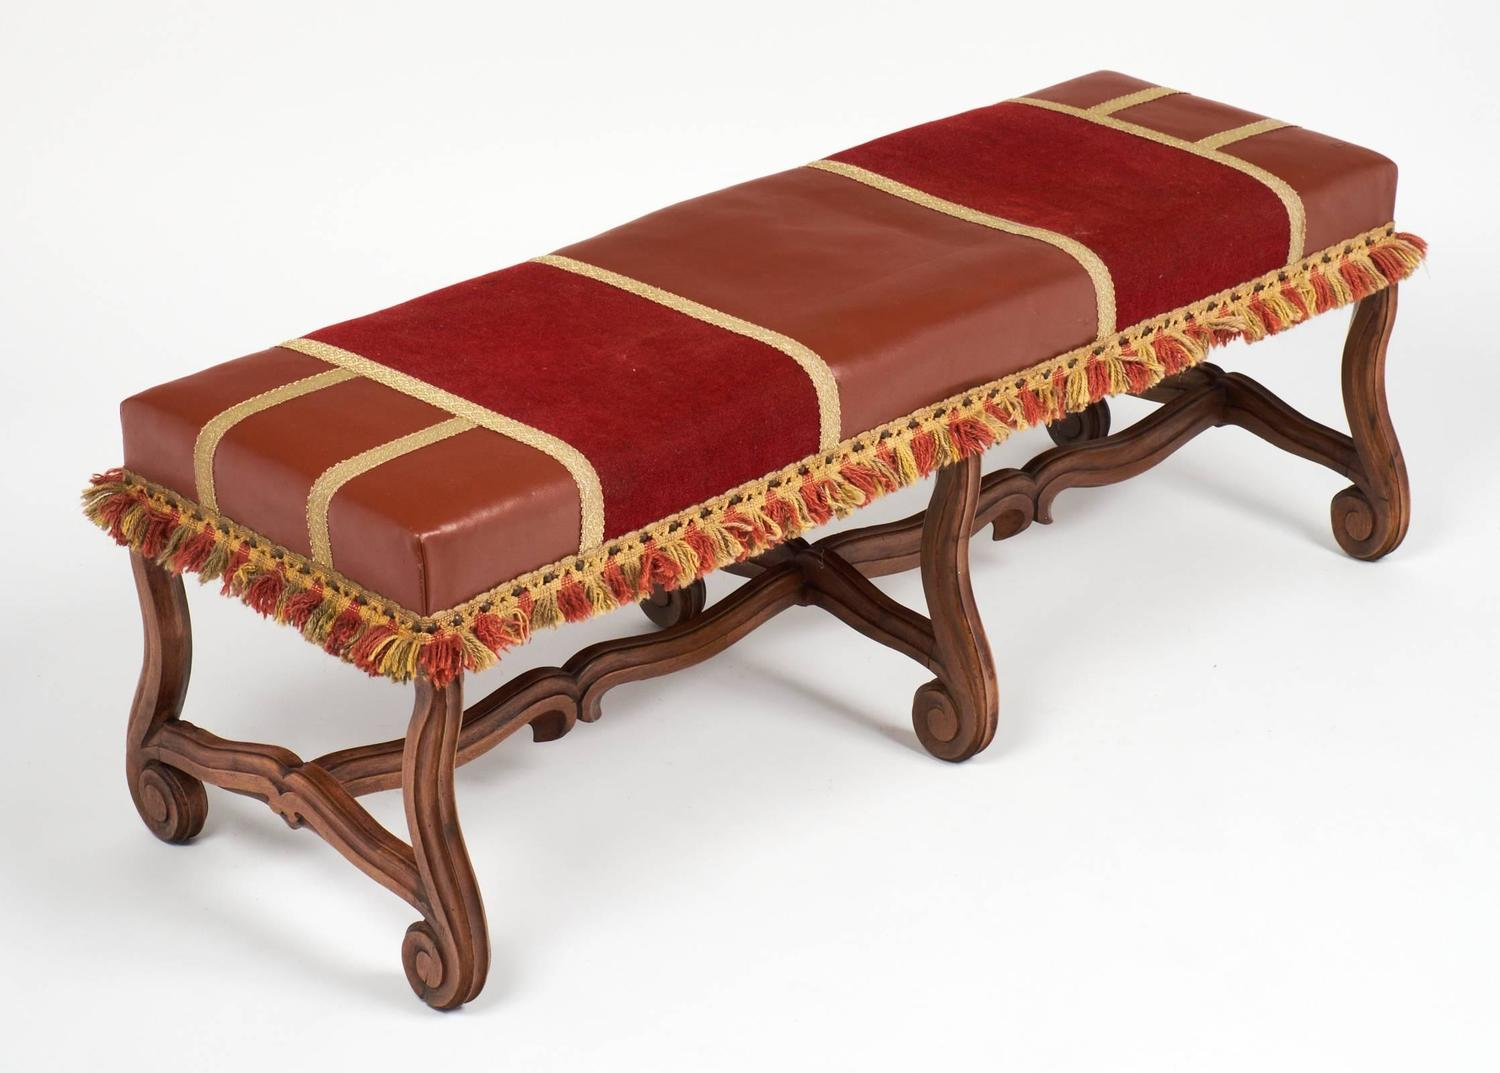 Antique Louis Xiv Style Hand Carved Bench For Sale At 1stdibs